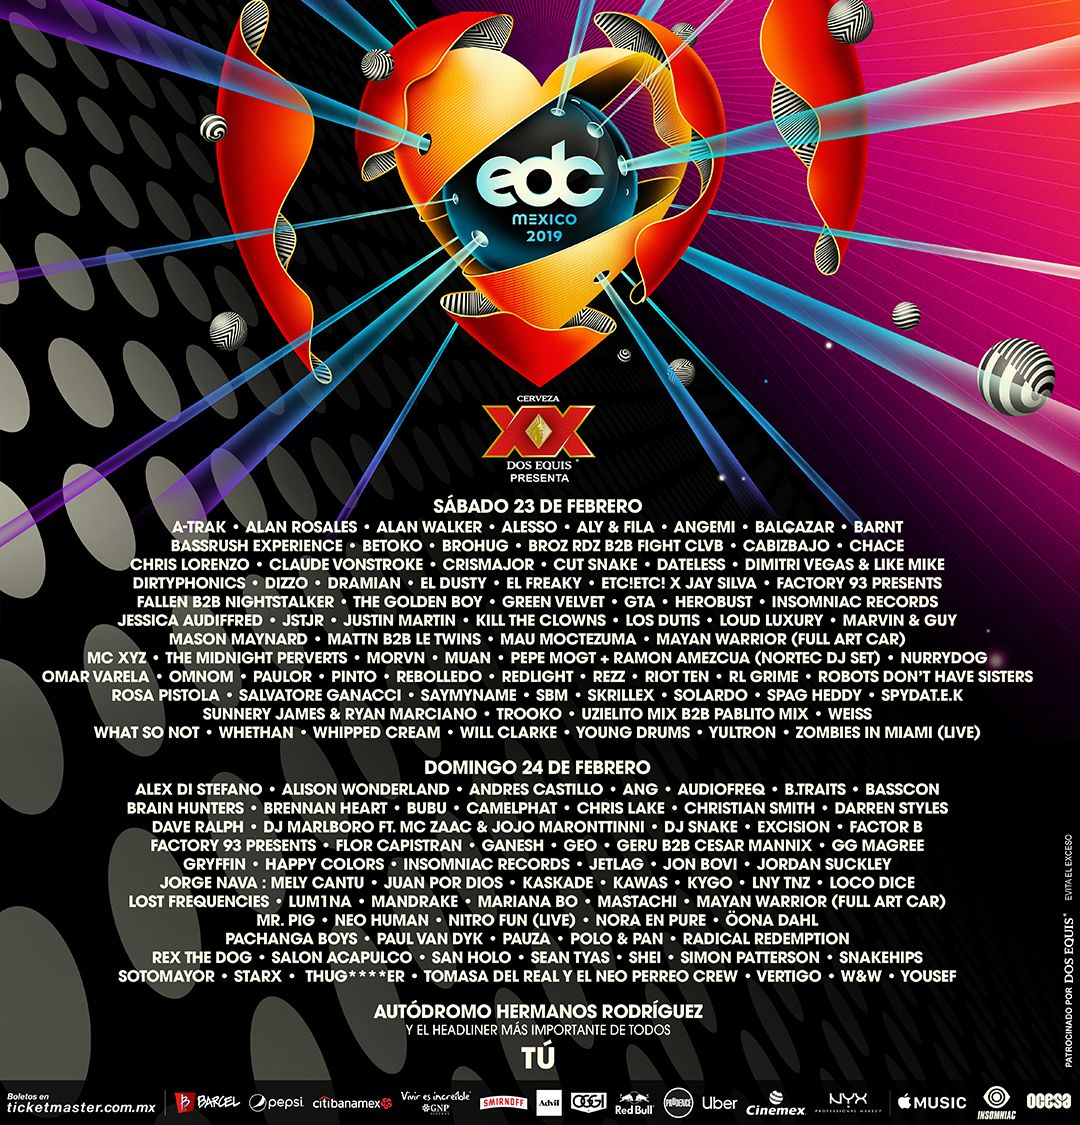 EDC Mexico 2019 Lineup by day